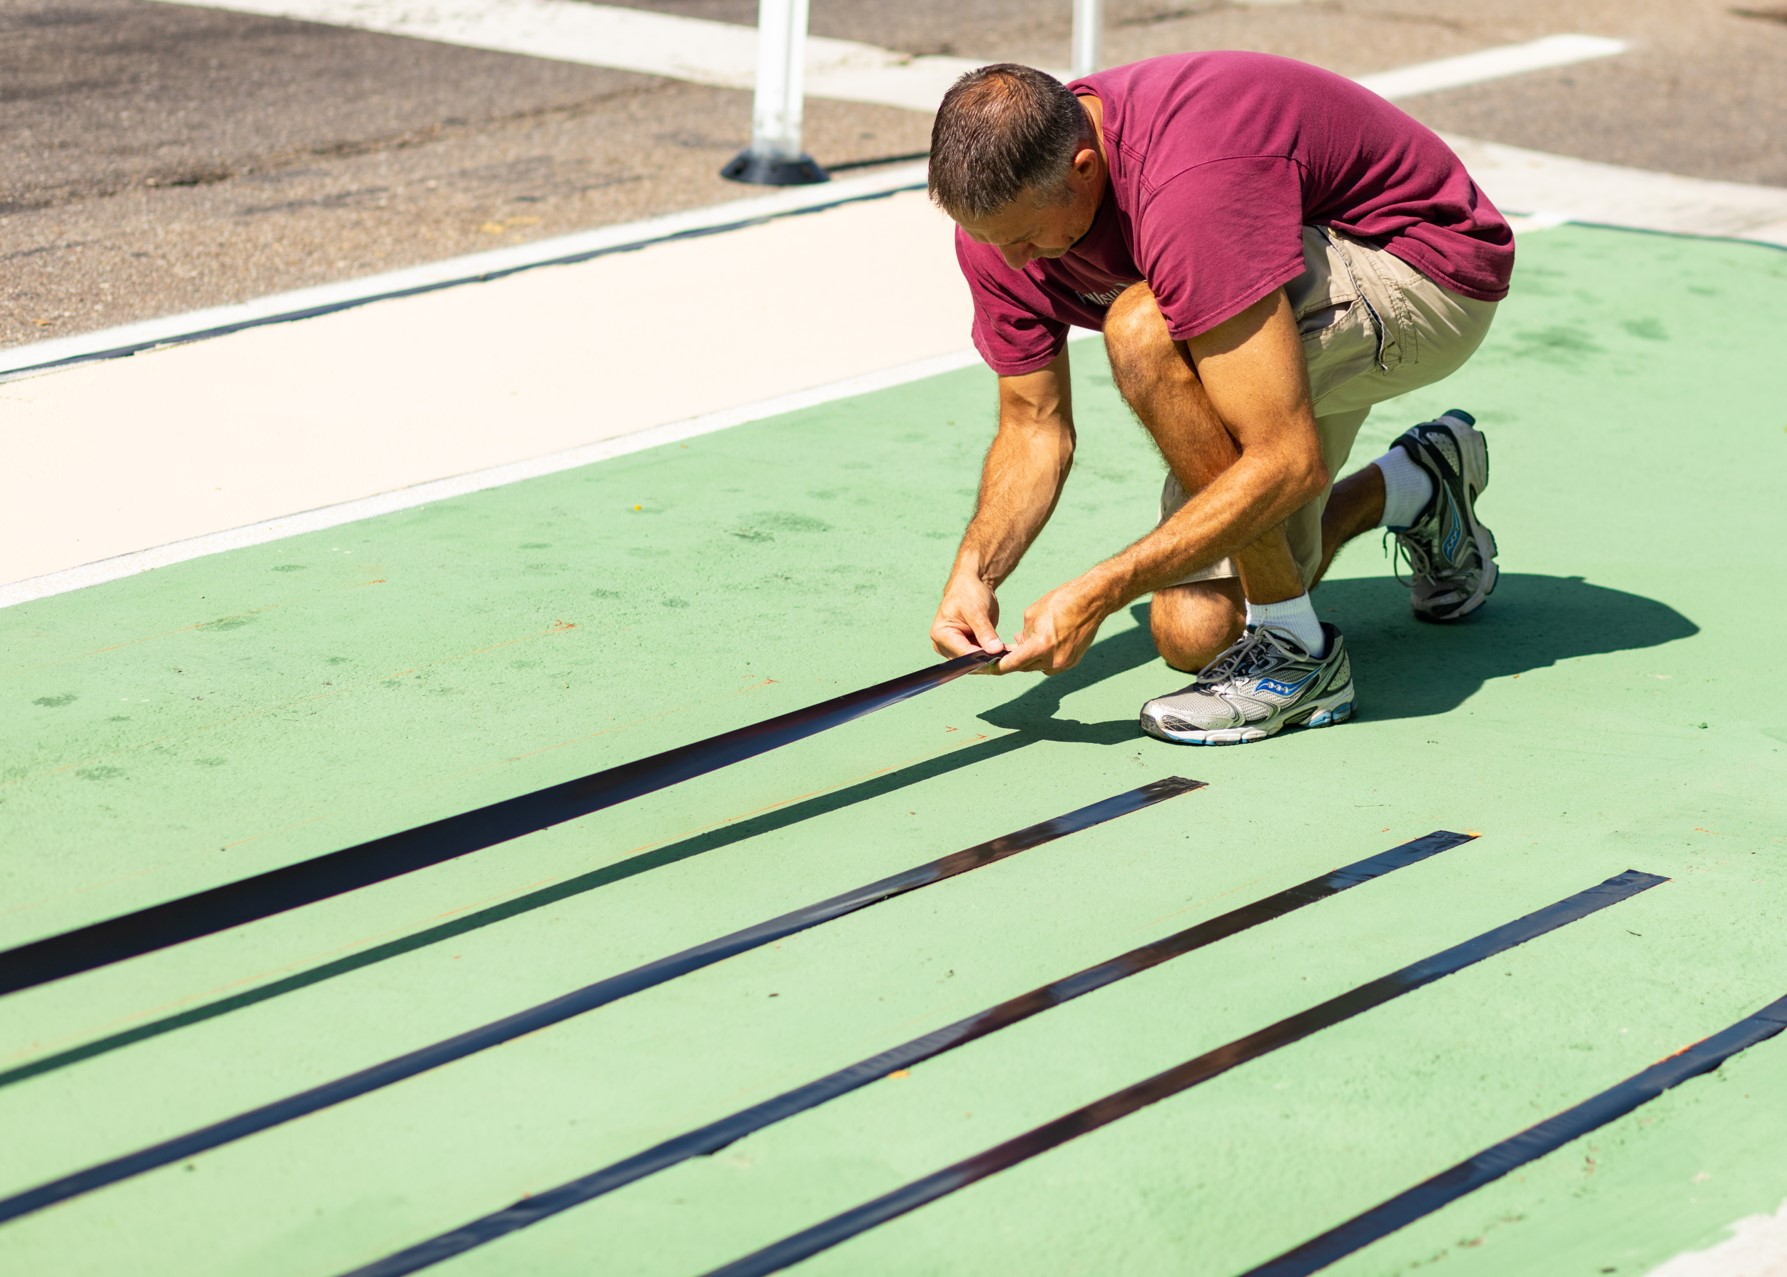 A volunteer outlines new pedestrian crossing markings at a bus stop along the project corridor